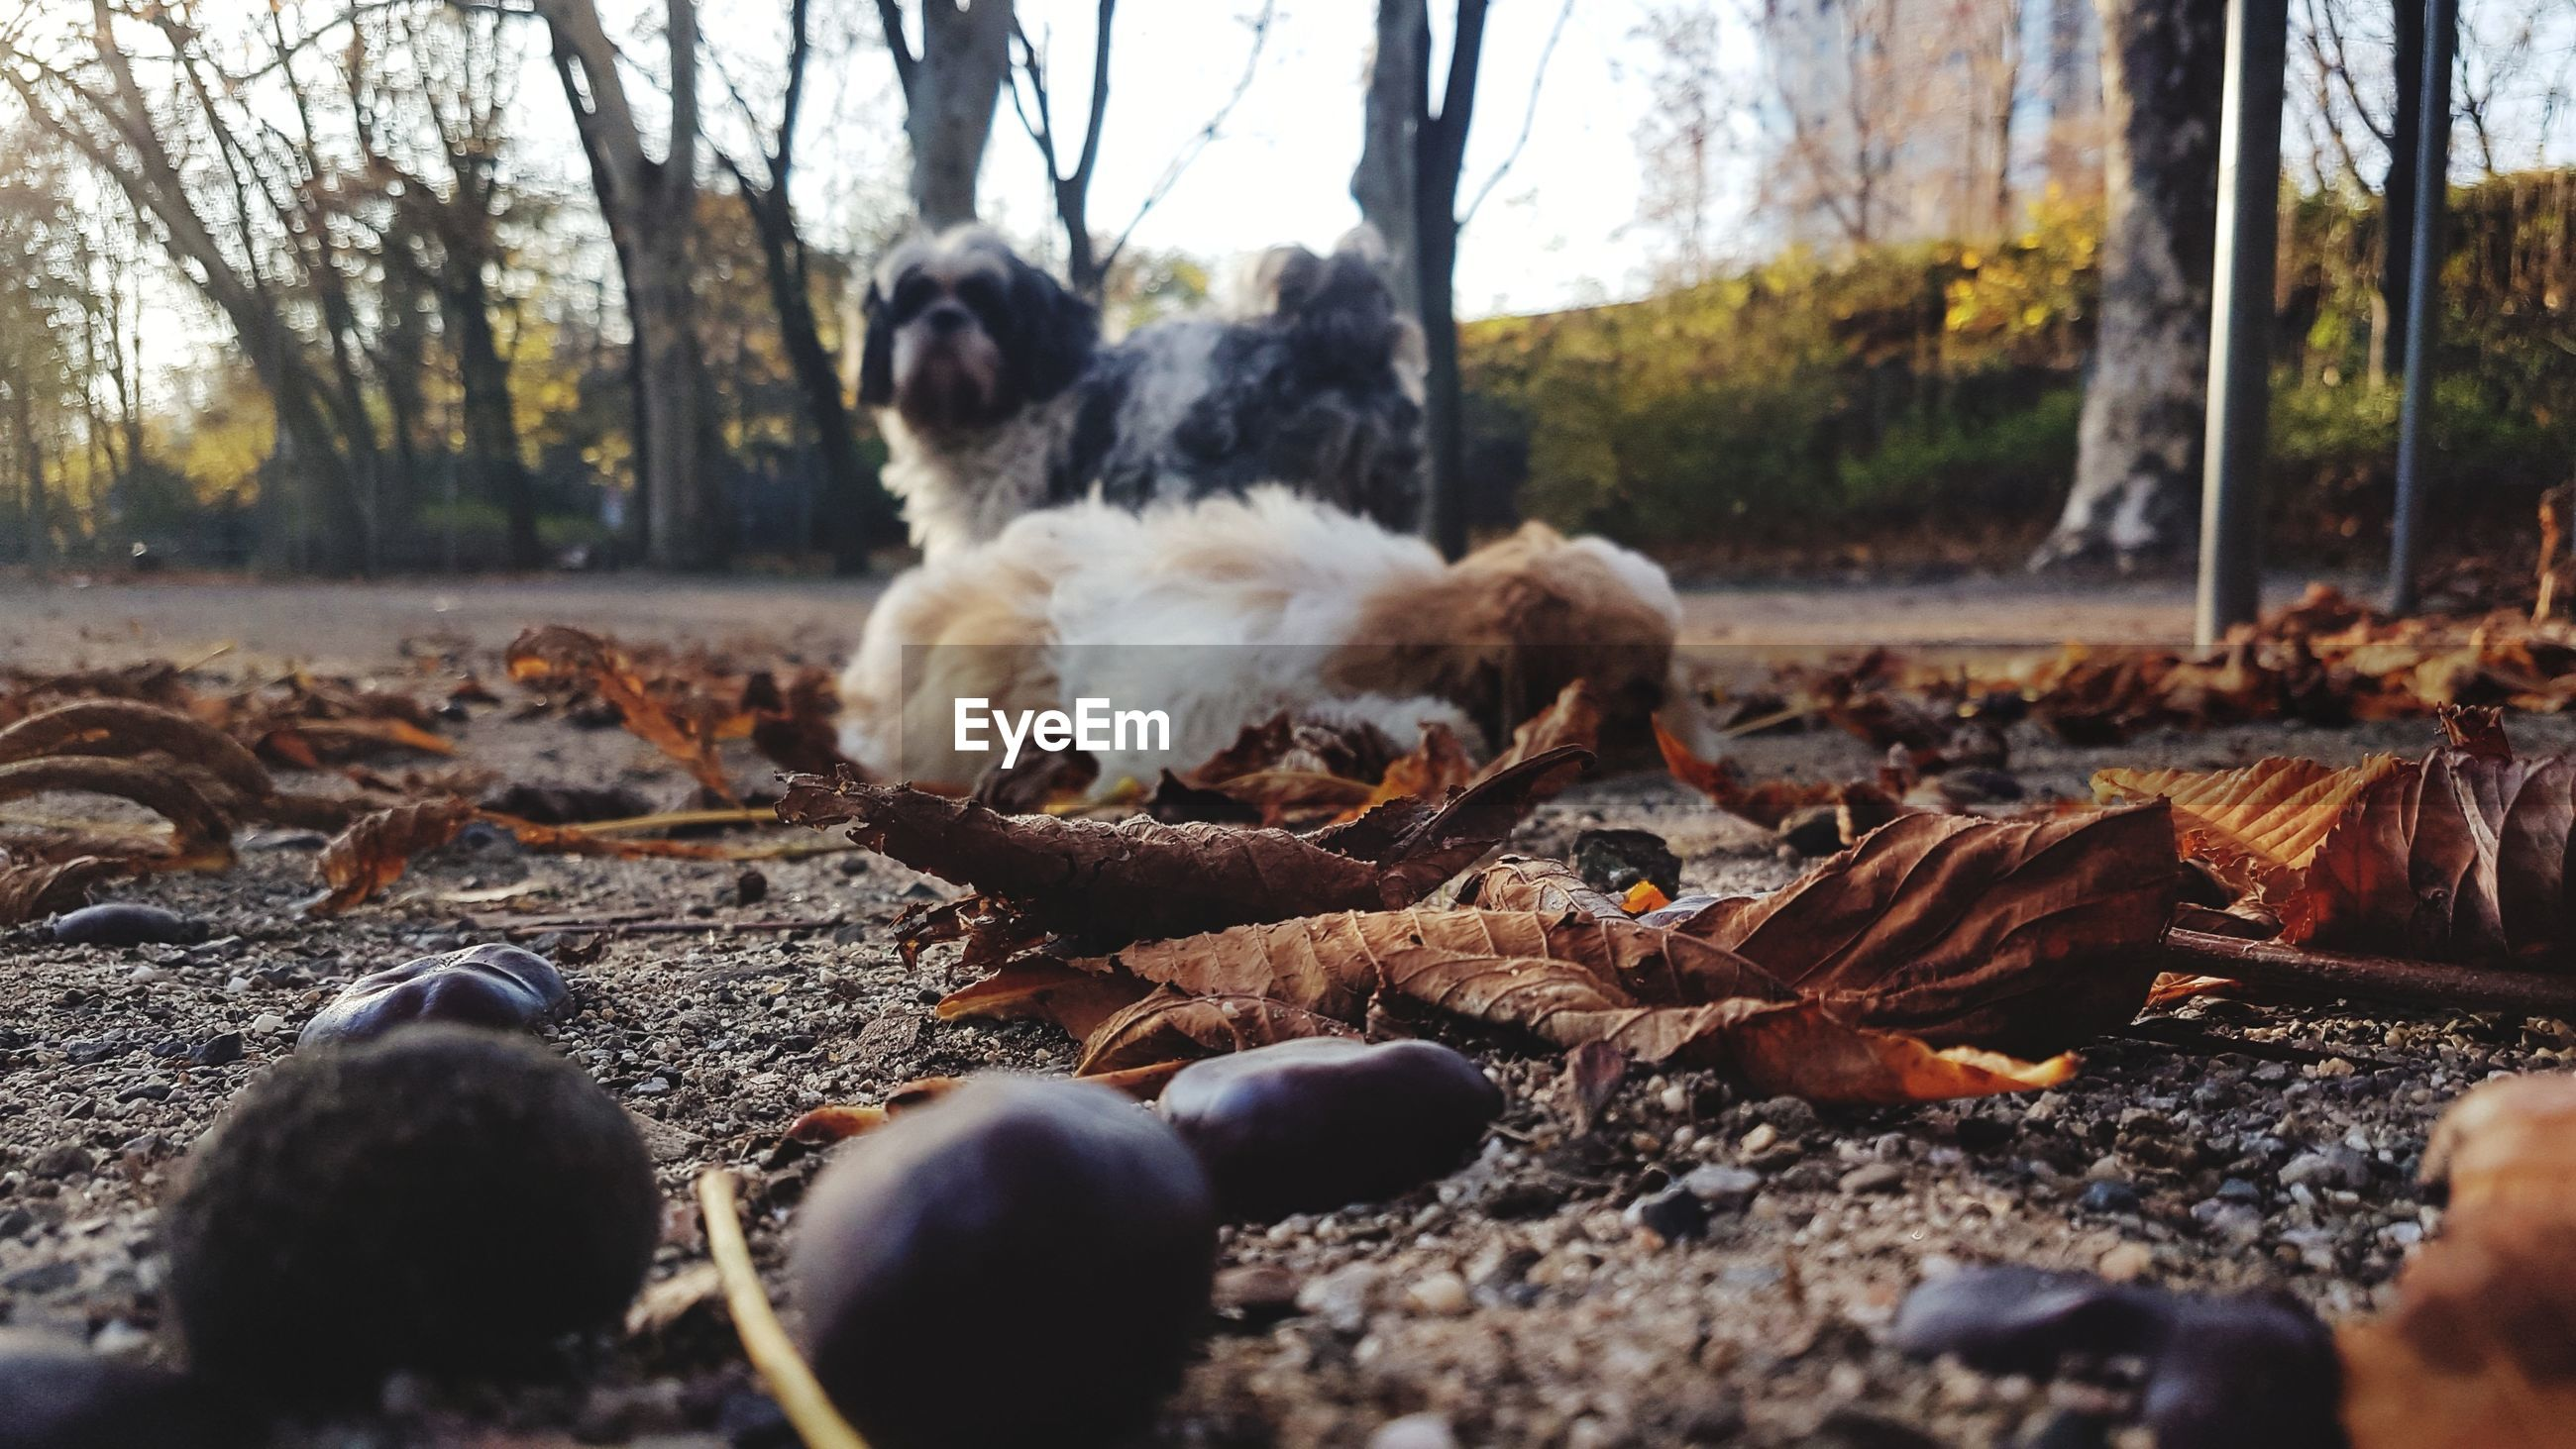 VIEW OF A DOG LYING ON GROUND